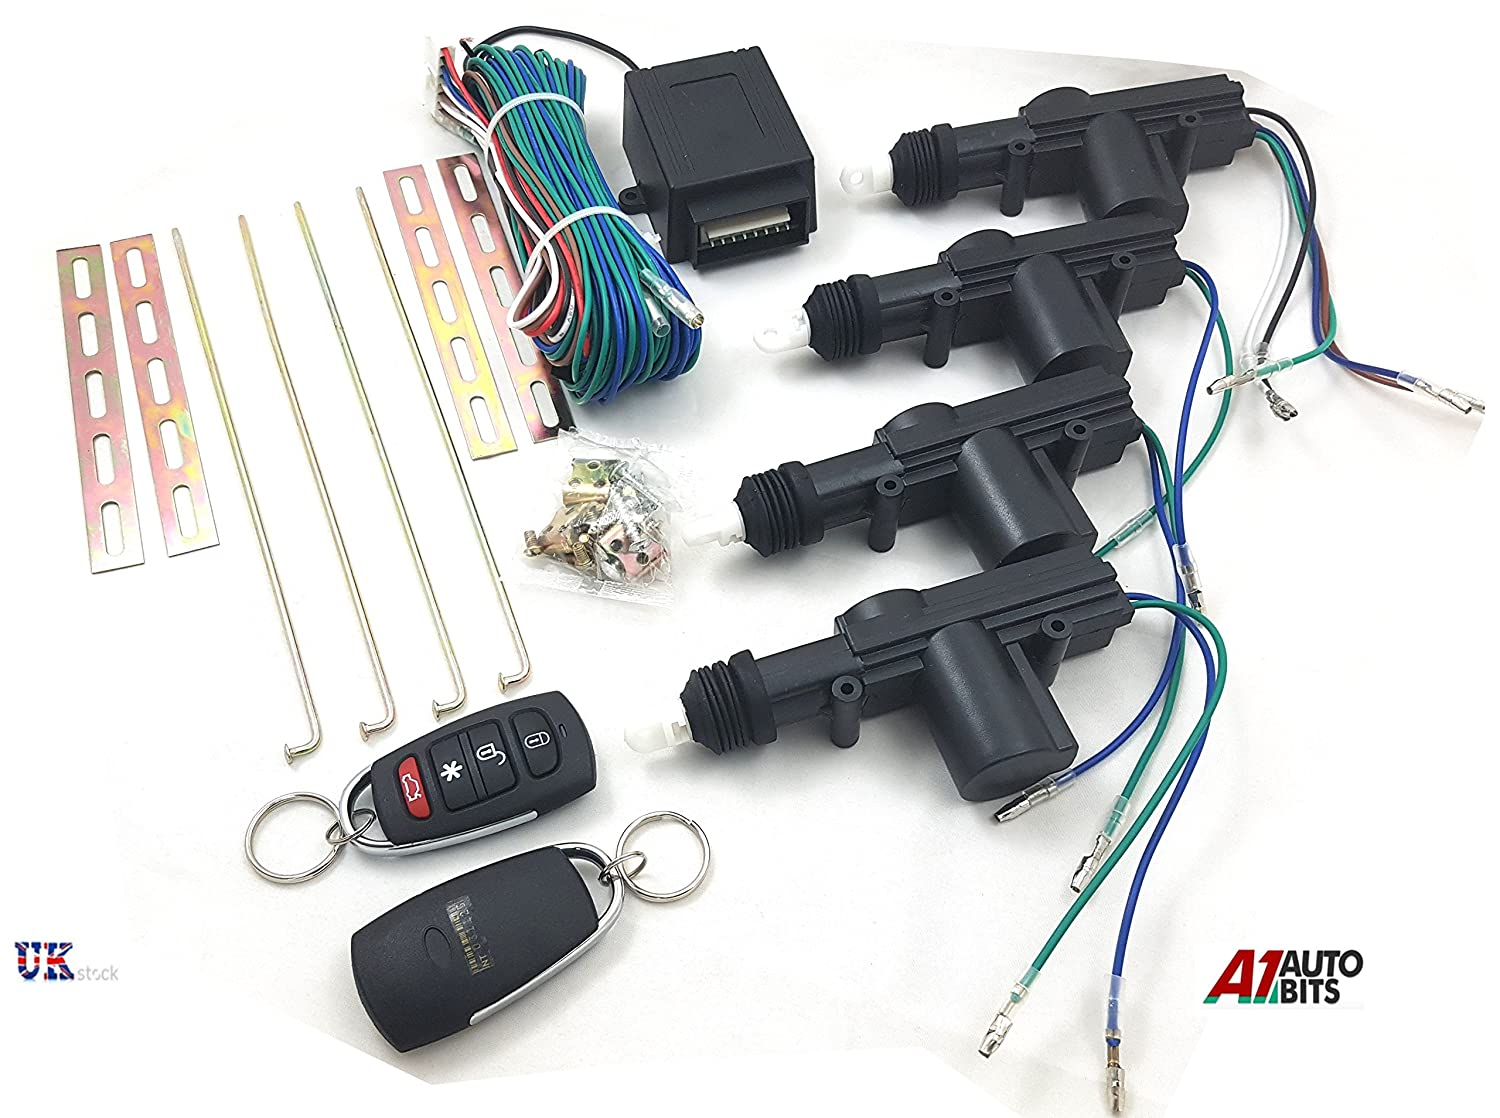 Other Universal Remote Central Locking Upgrade Kit Keyless Entry 2 Fobs LED Flash New unbranded